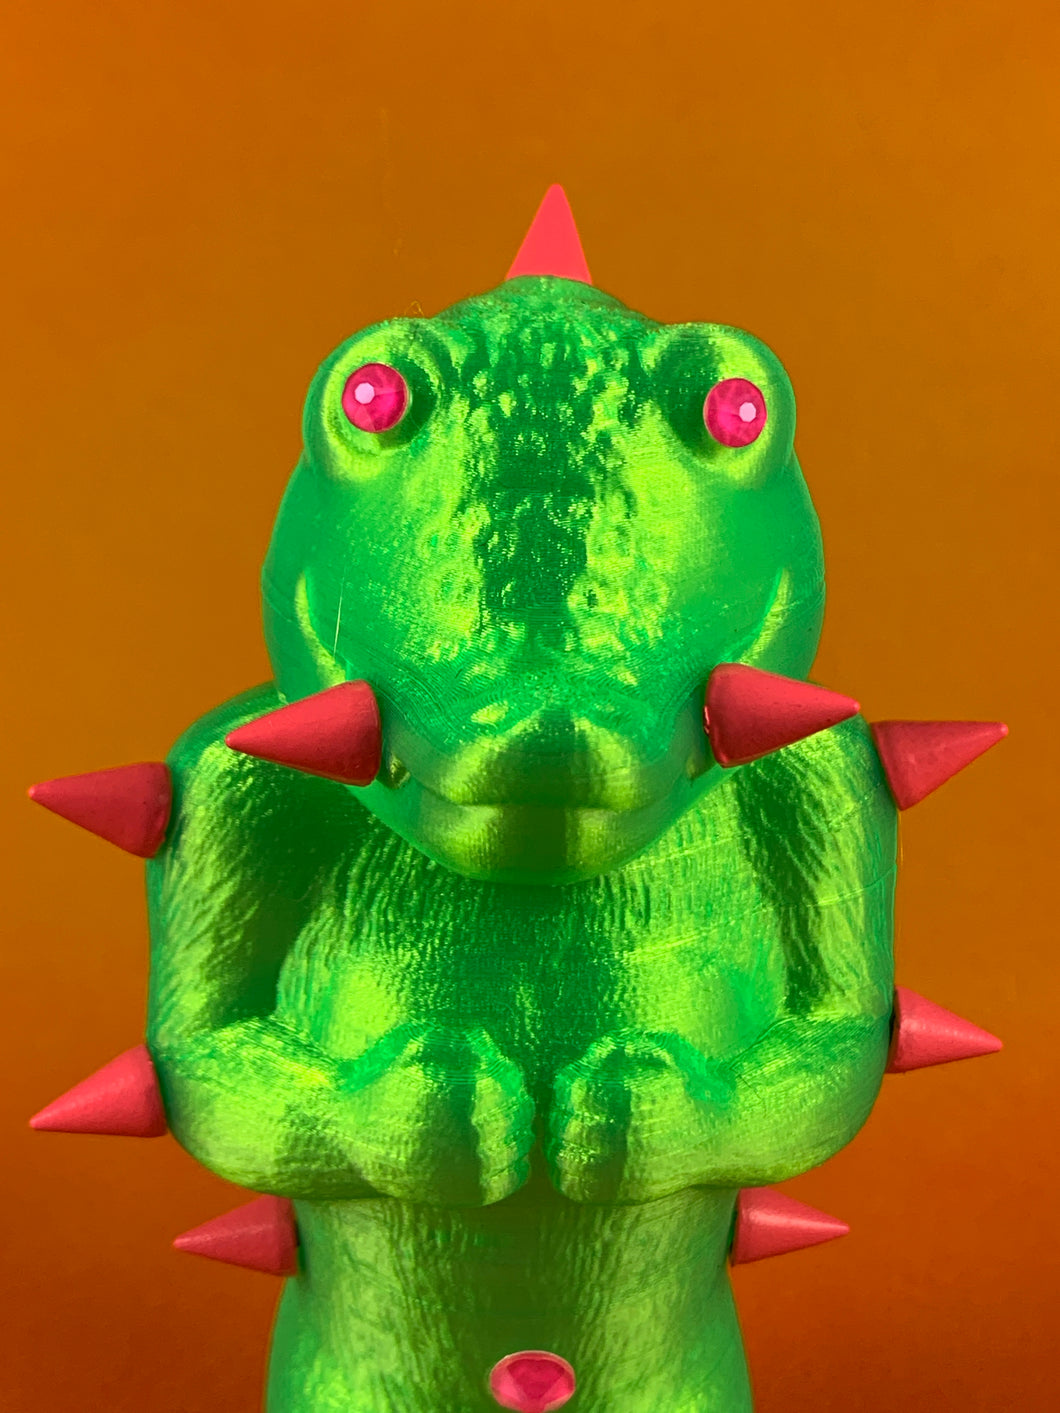 Mini Croc Headed Ape: Florescent Green with Pink Spikes